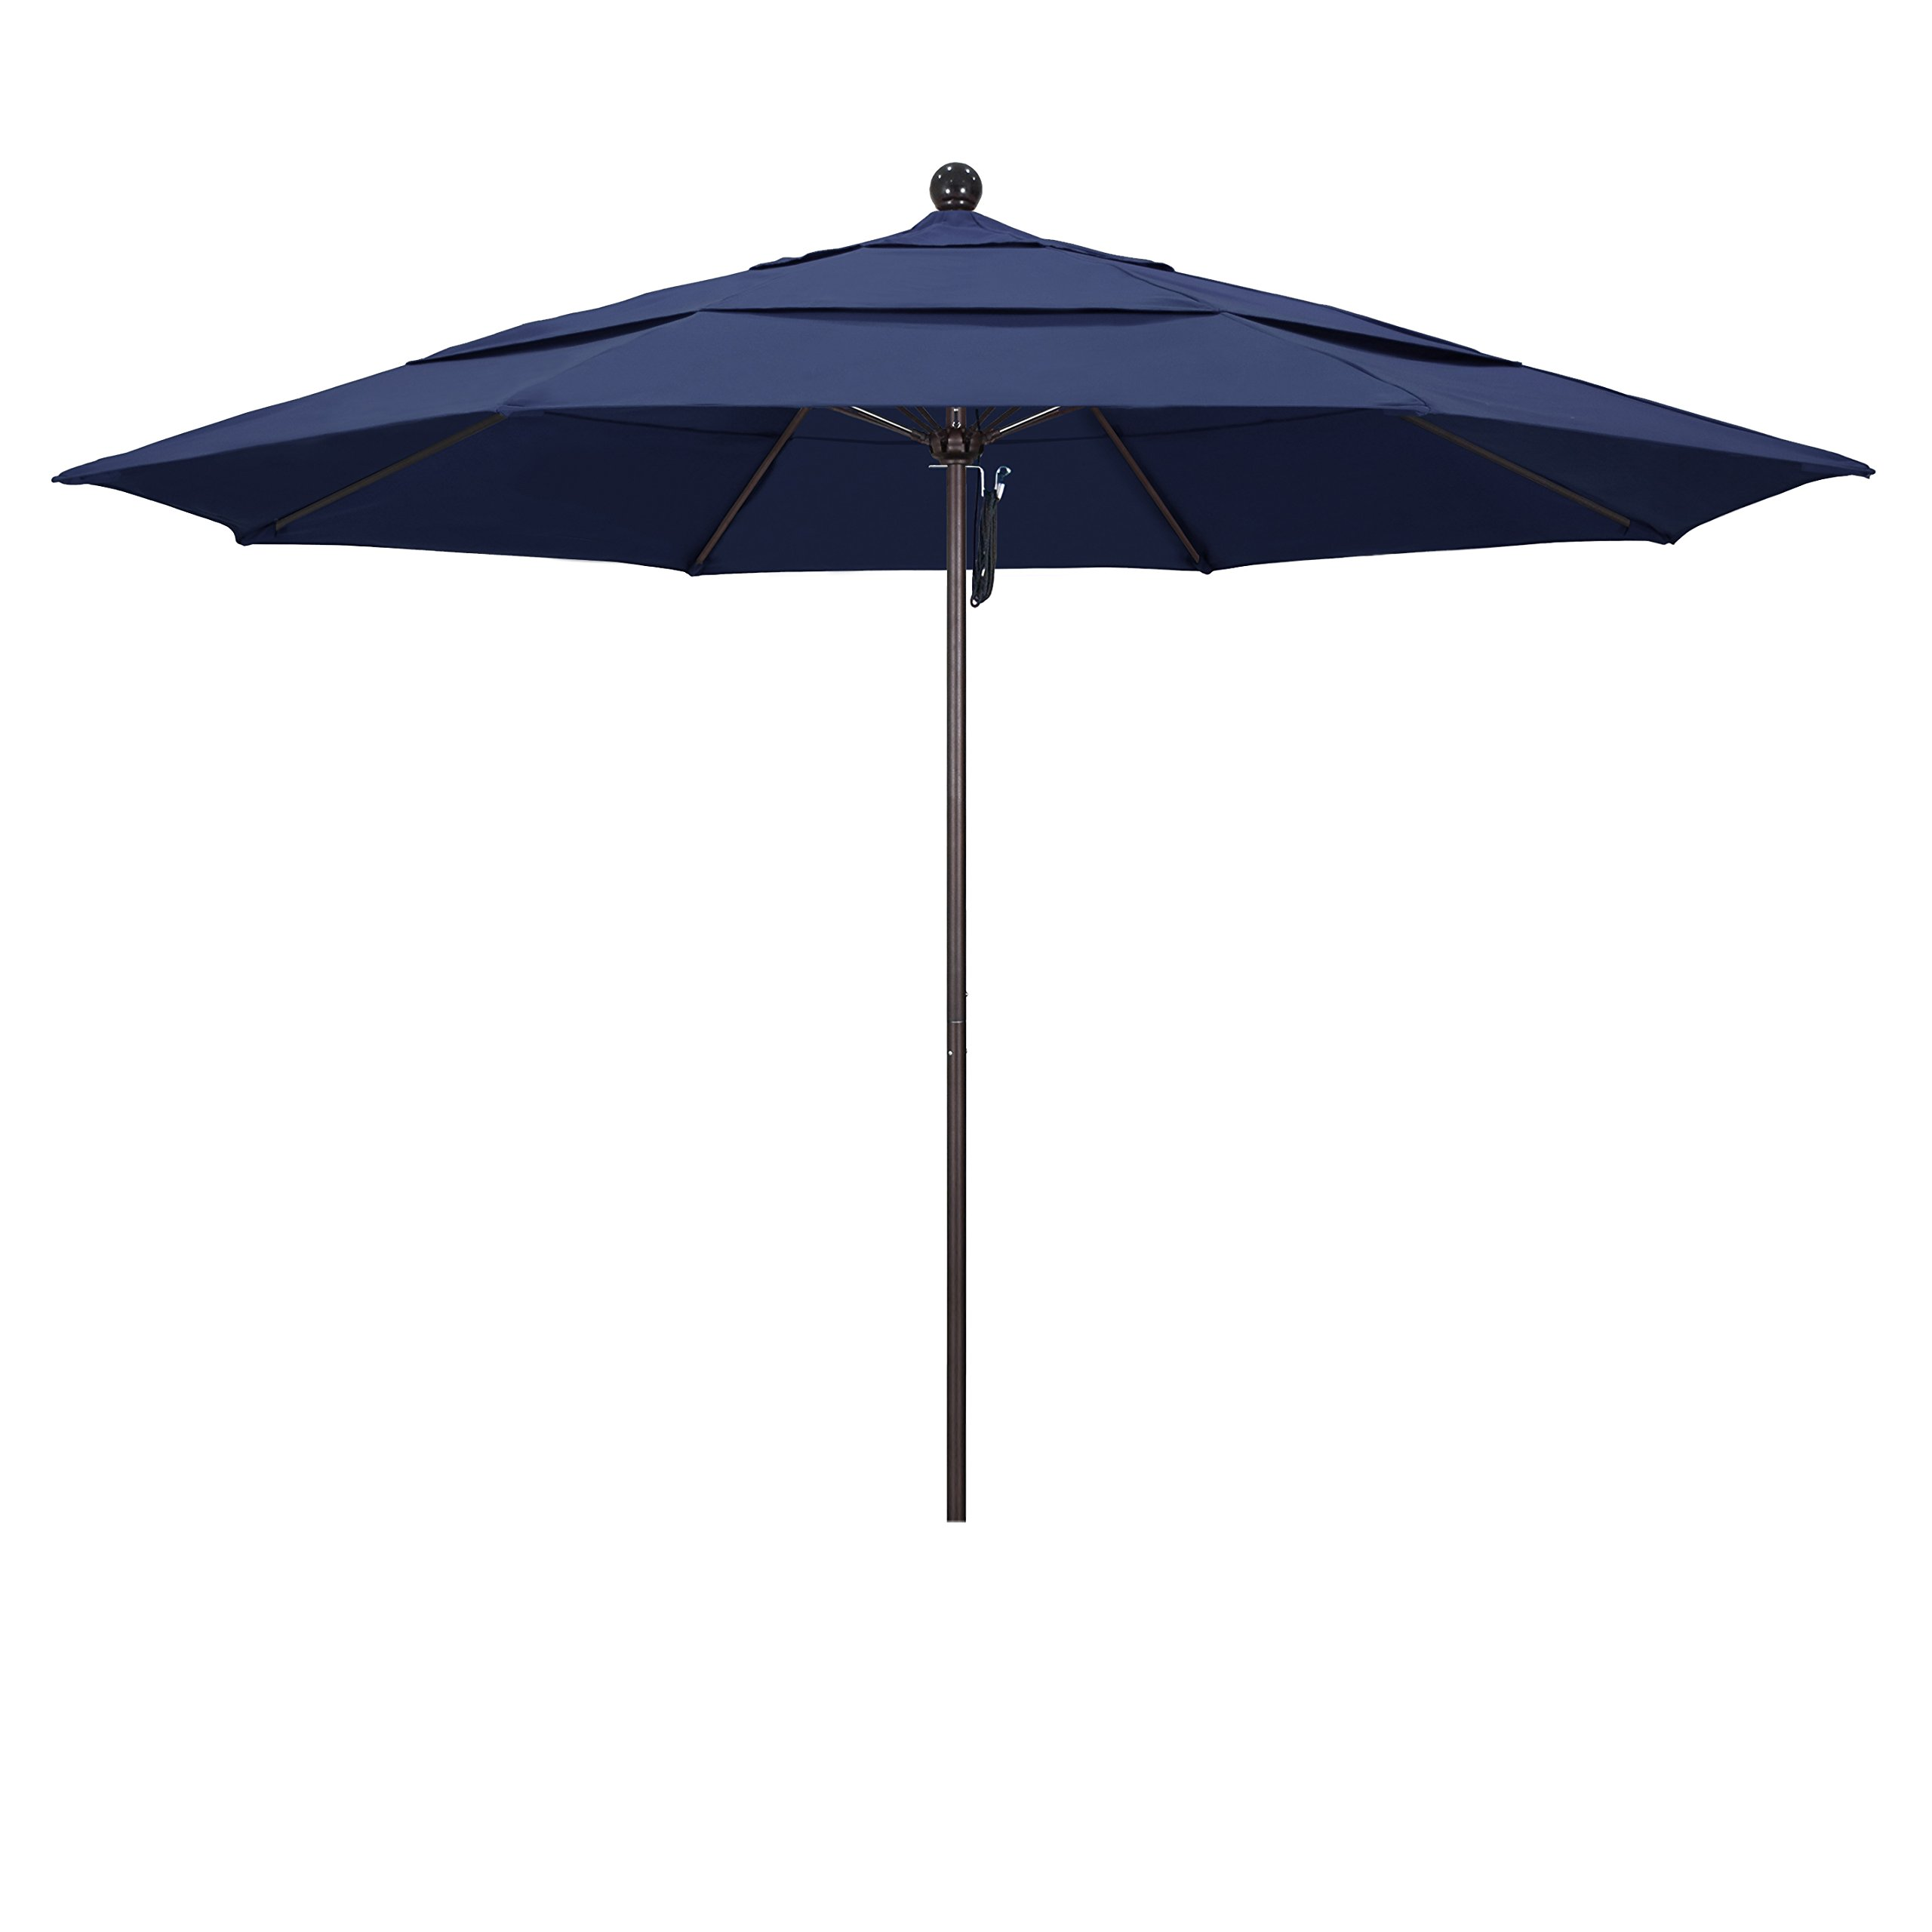 California Umbrella 11' Round Aluminum/Fiberglass Umbrella, Pulley Lift, Bronze Pole, Navy Blue Olefin Fabric by California Umbrella